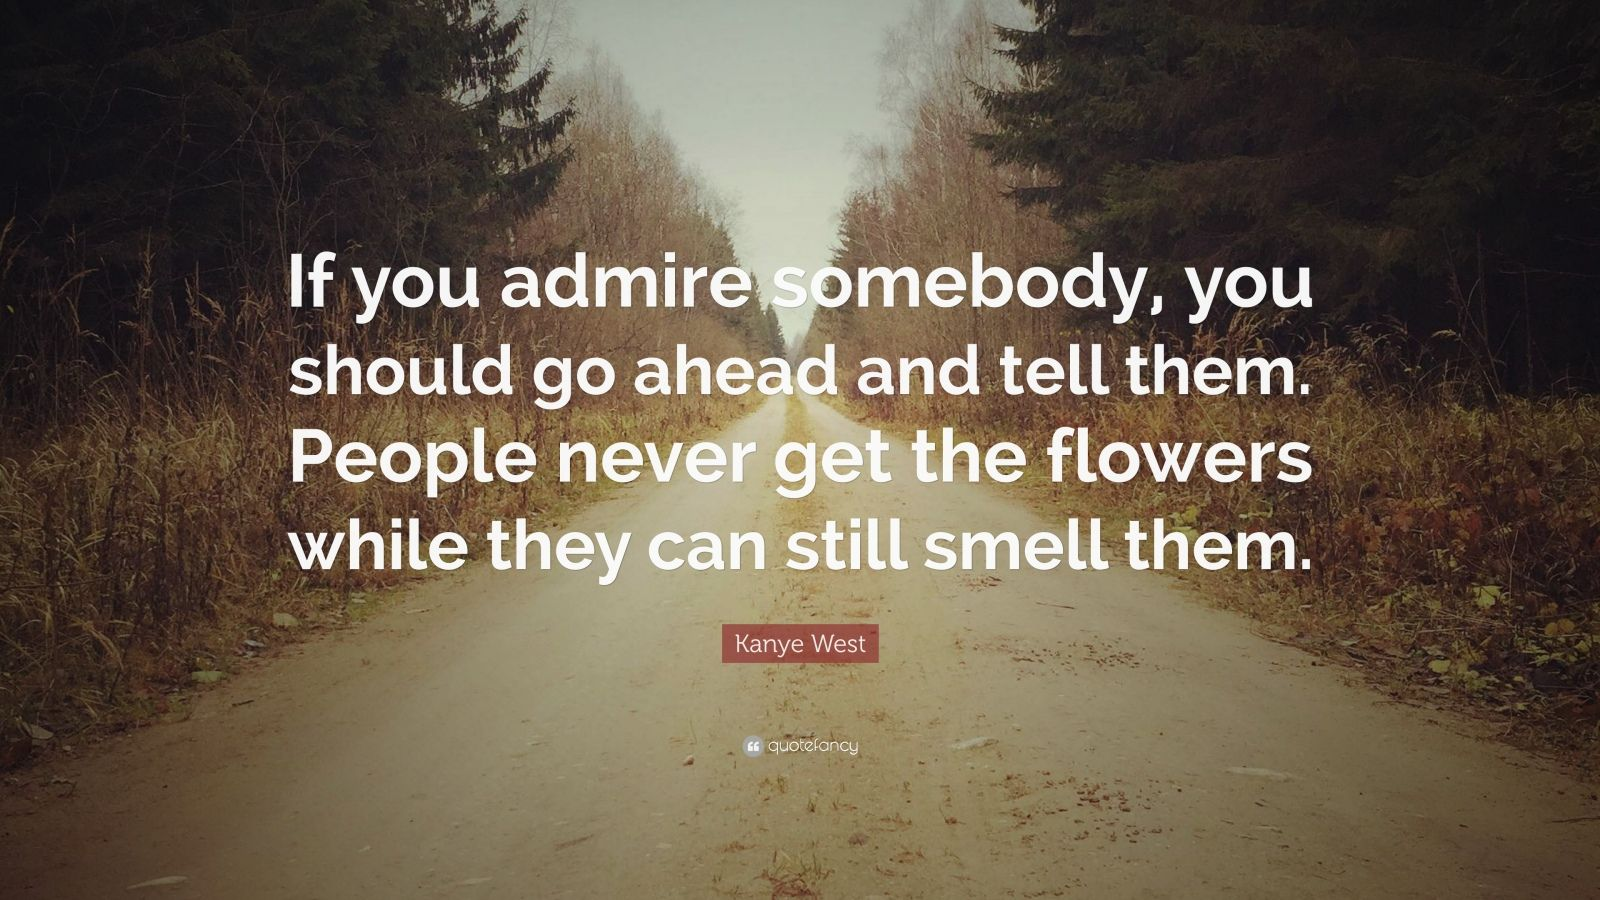 """Kanye West Quote: """"If you admire somebody, you should go ahead and tell them. People never get the flowers while they can still smell them."""""""